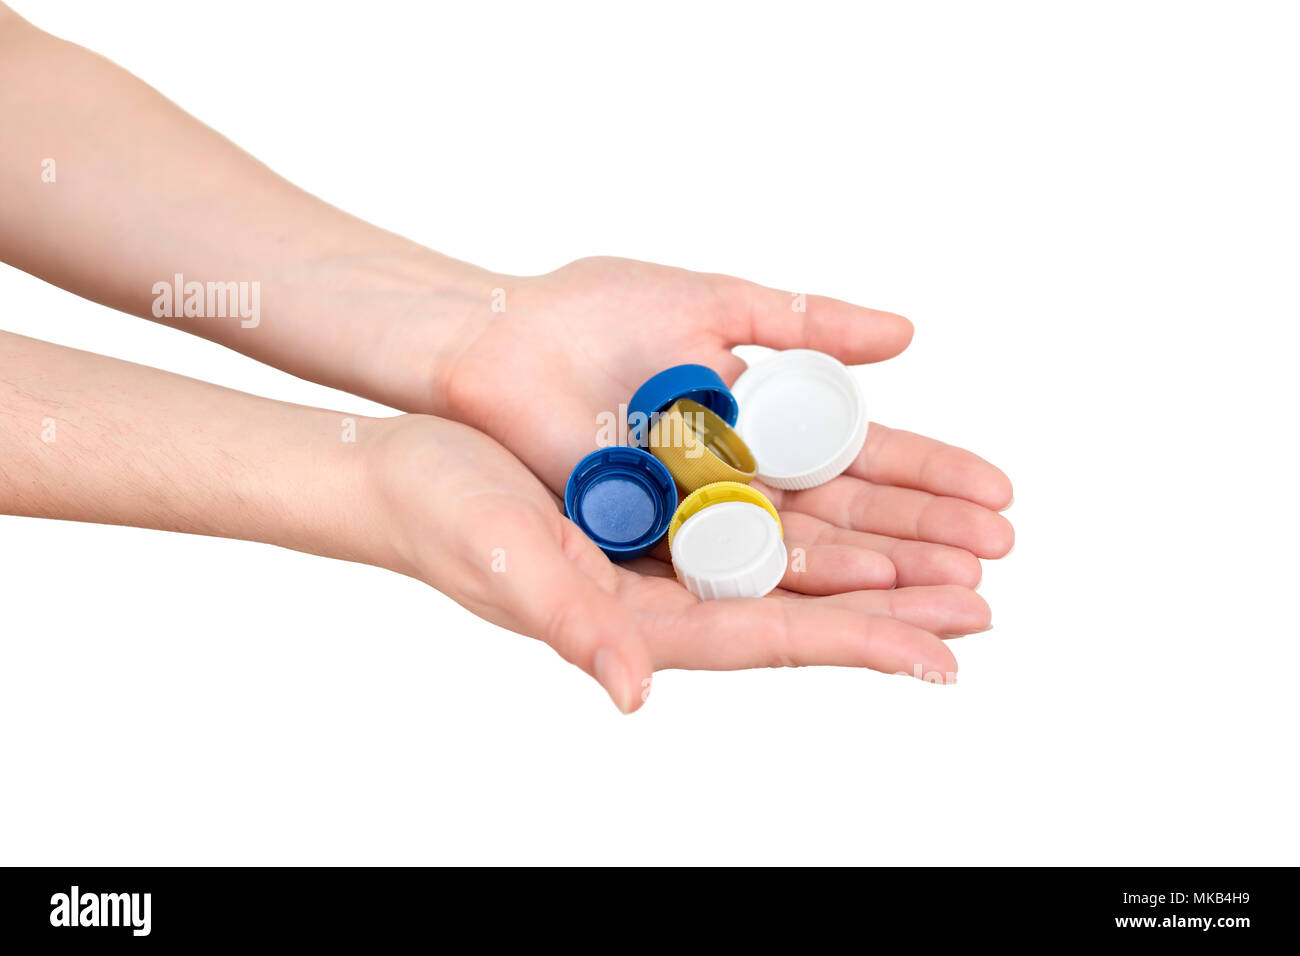 Female hand holding plastic bottle caps. Two hands with plastic lids. Recyclable waste. Recycling, reuse, garbage disposal, resources, environment and - Stock Image